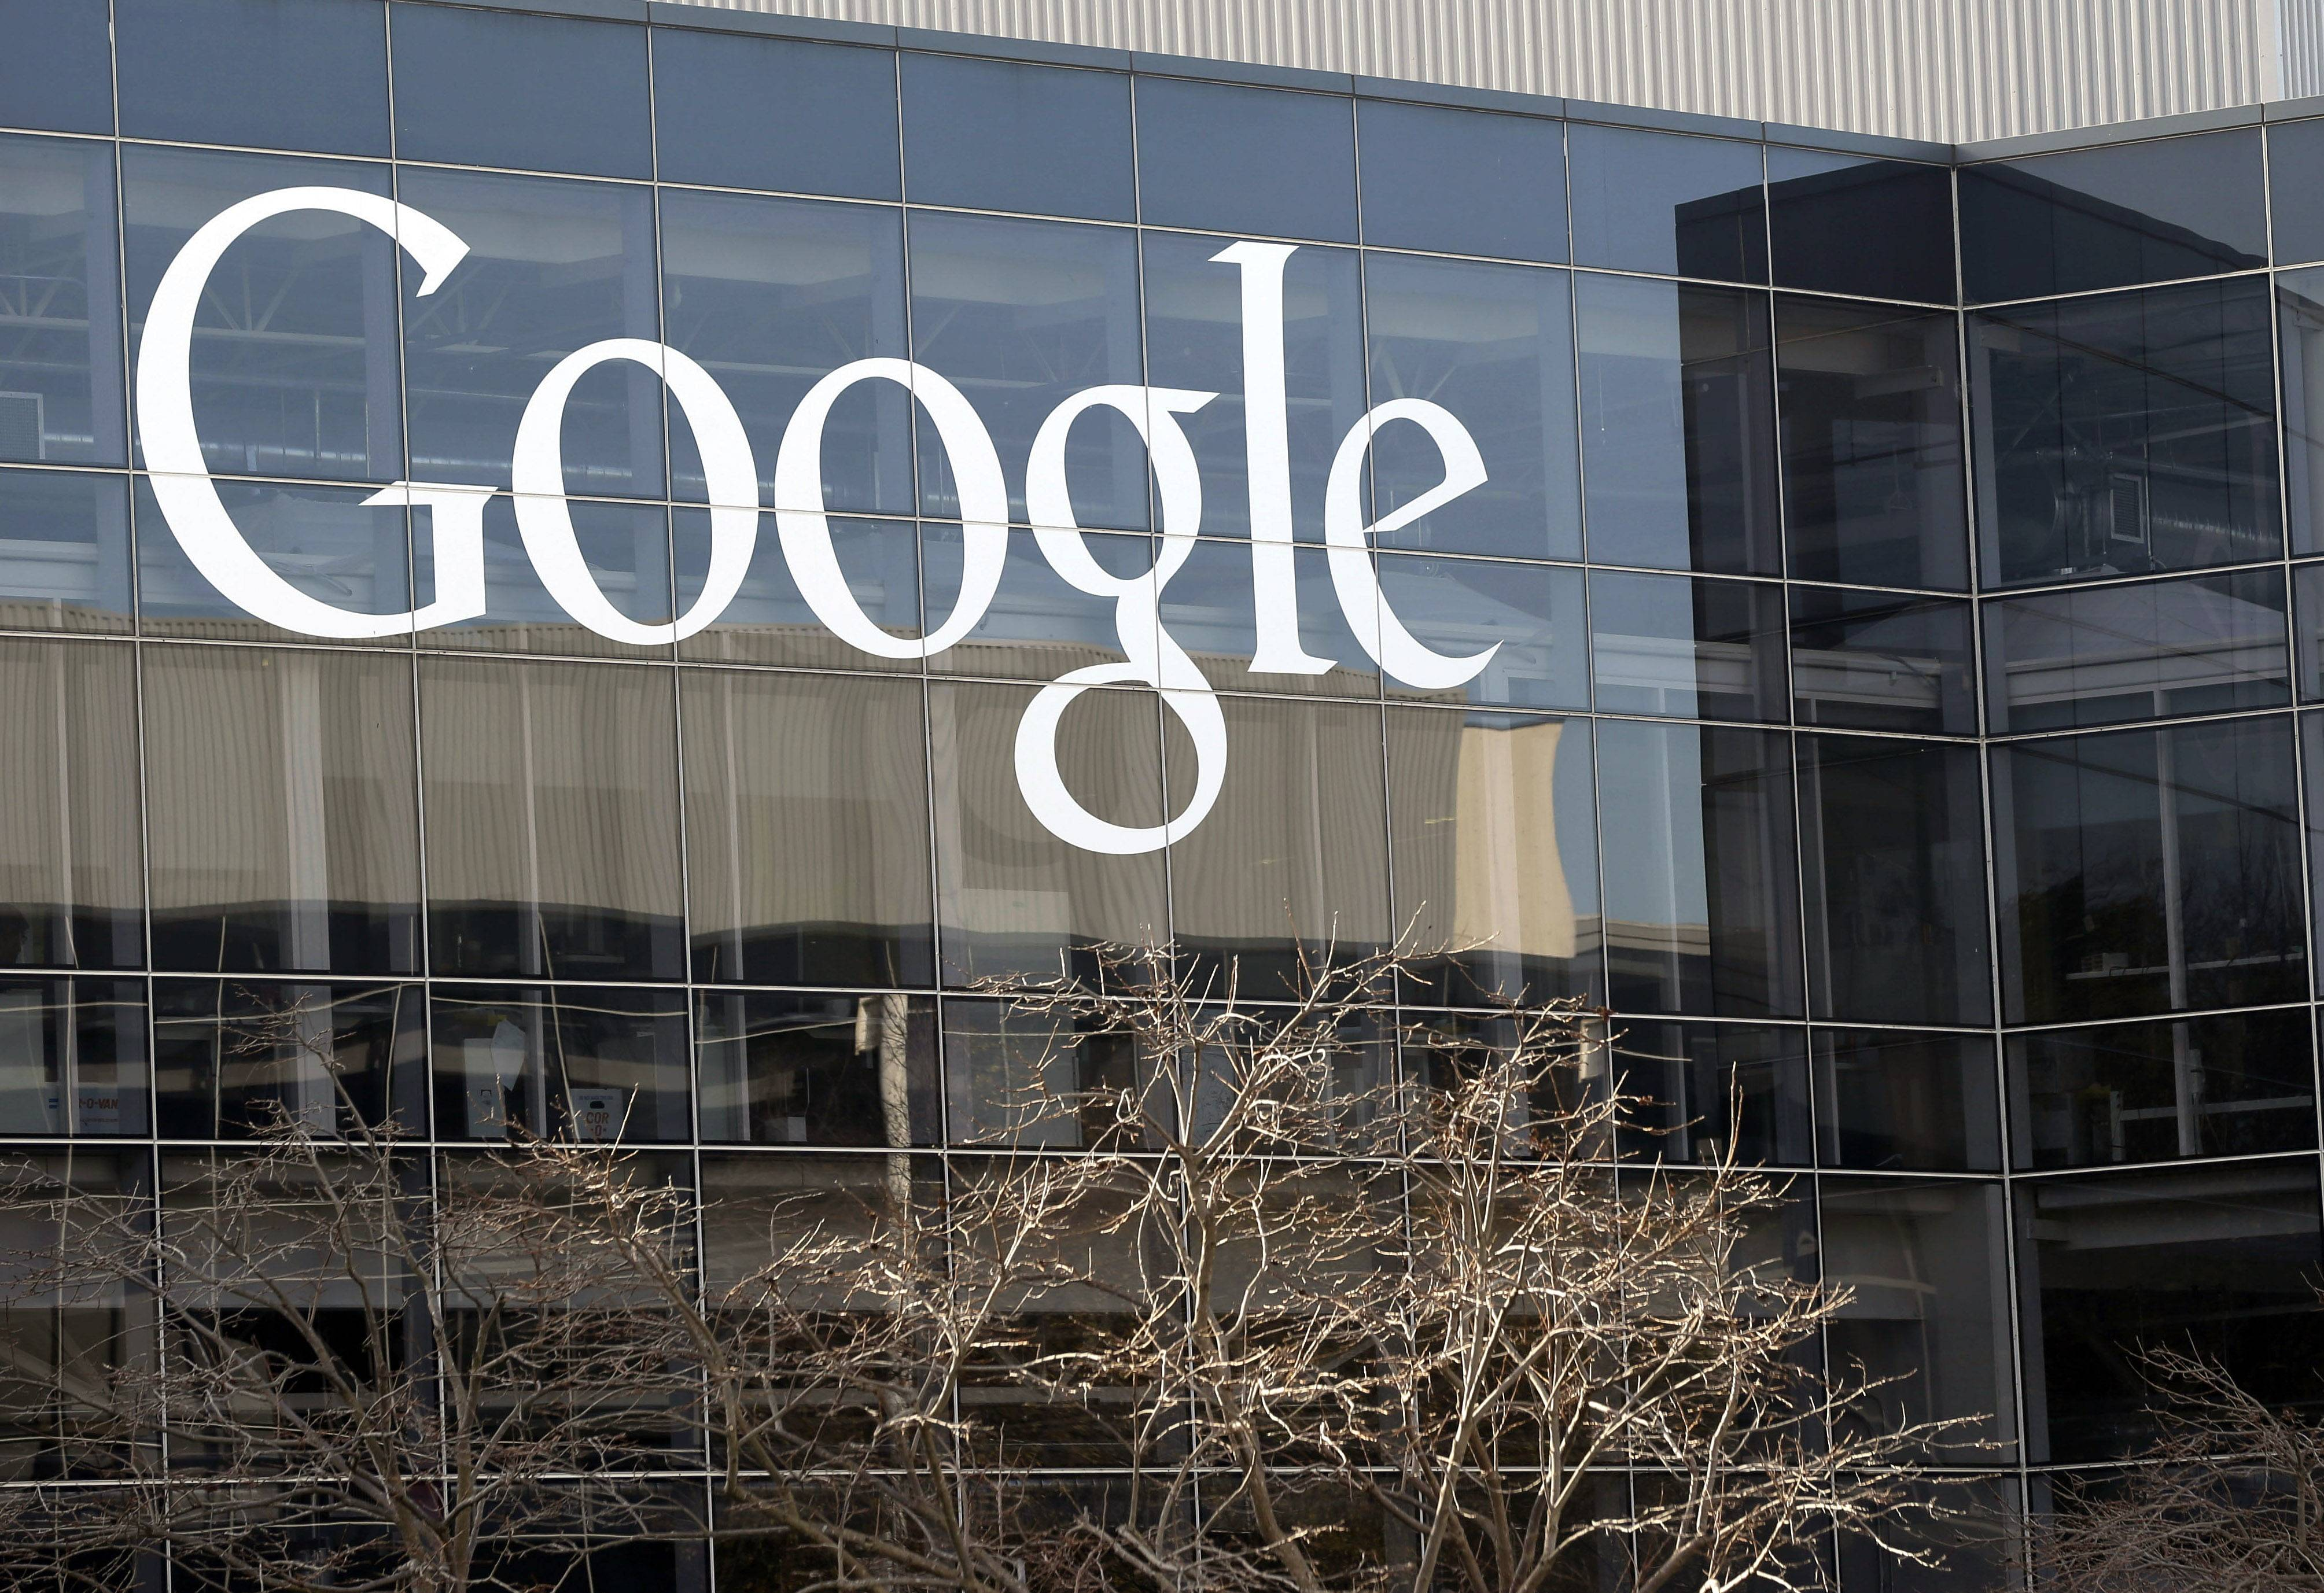 Google sprints ahead in AI building blocks, leaving rivals wary